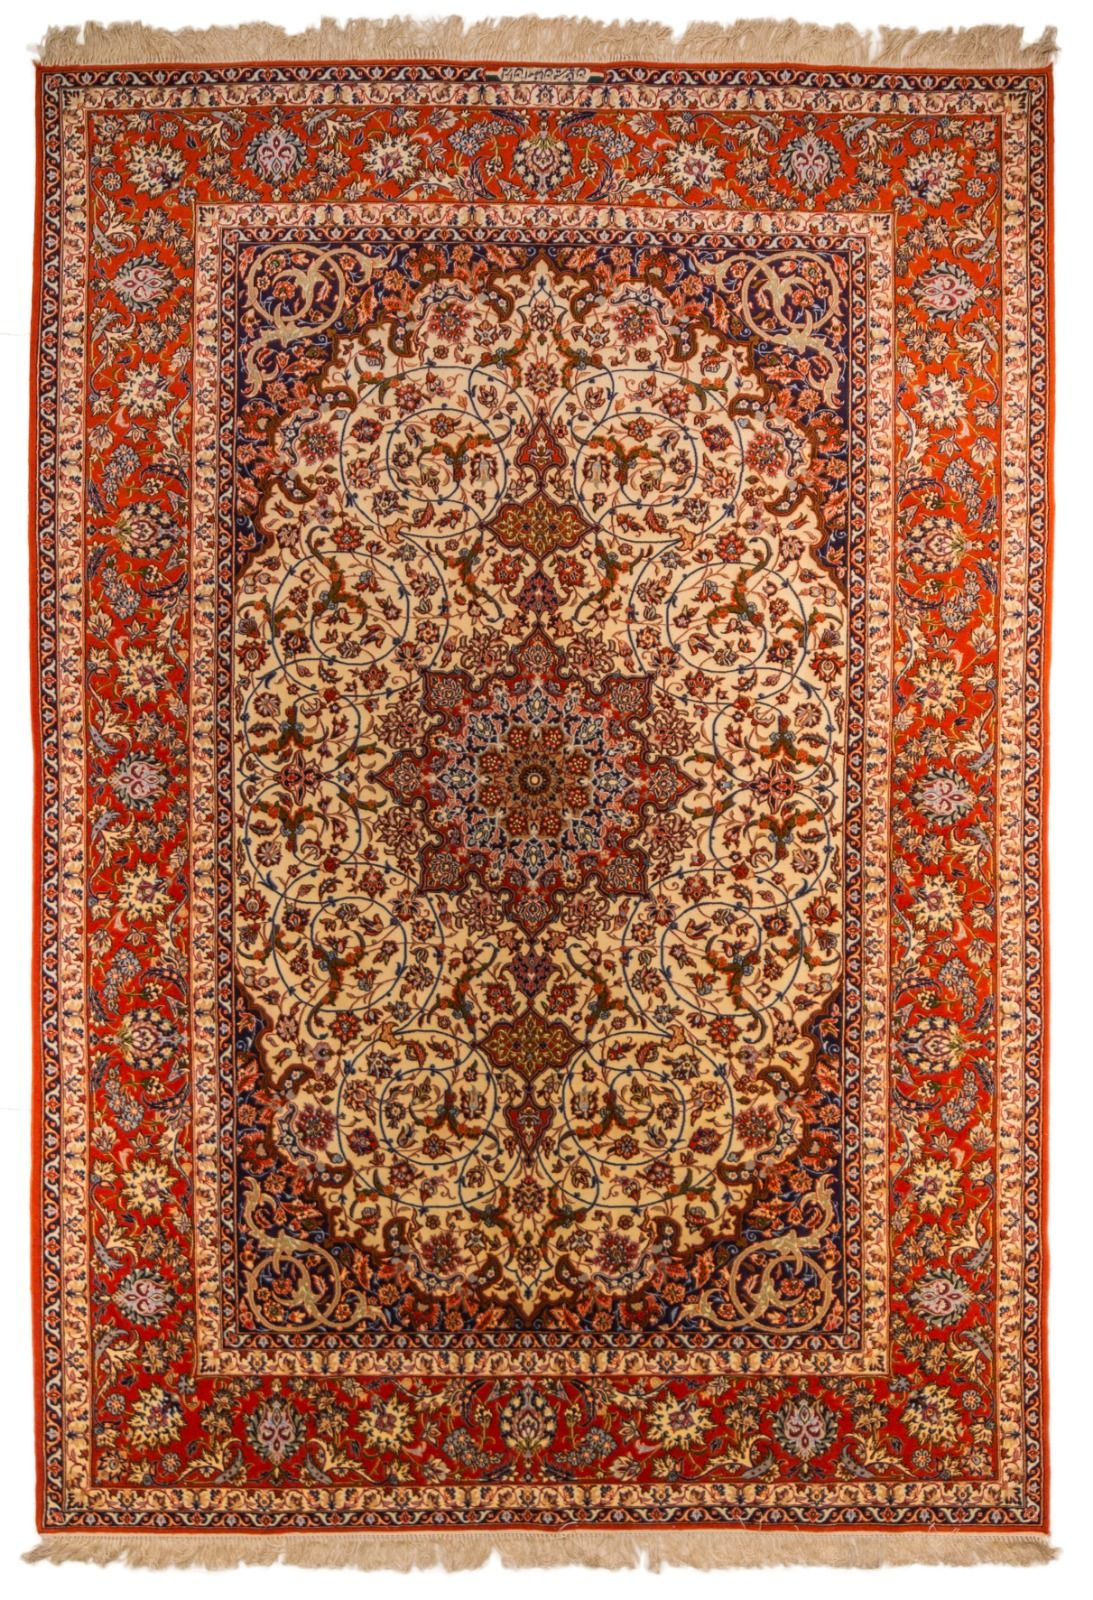 An Isfahan Wool With Silk Classic Design Carpet Knots 700 000 Knot M2 Approximately Dimensions 301 X 199 Cm Approxi Fine Rugs Knotted Carpet Rugs And Carpet